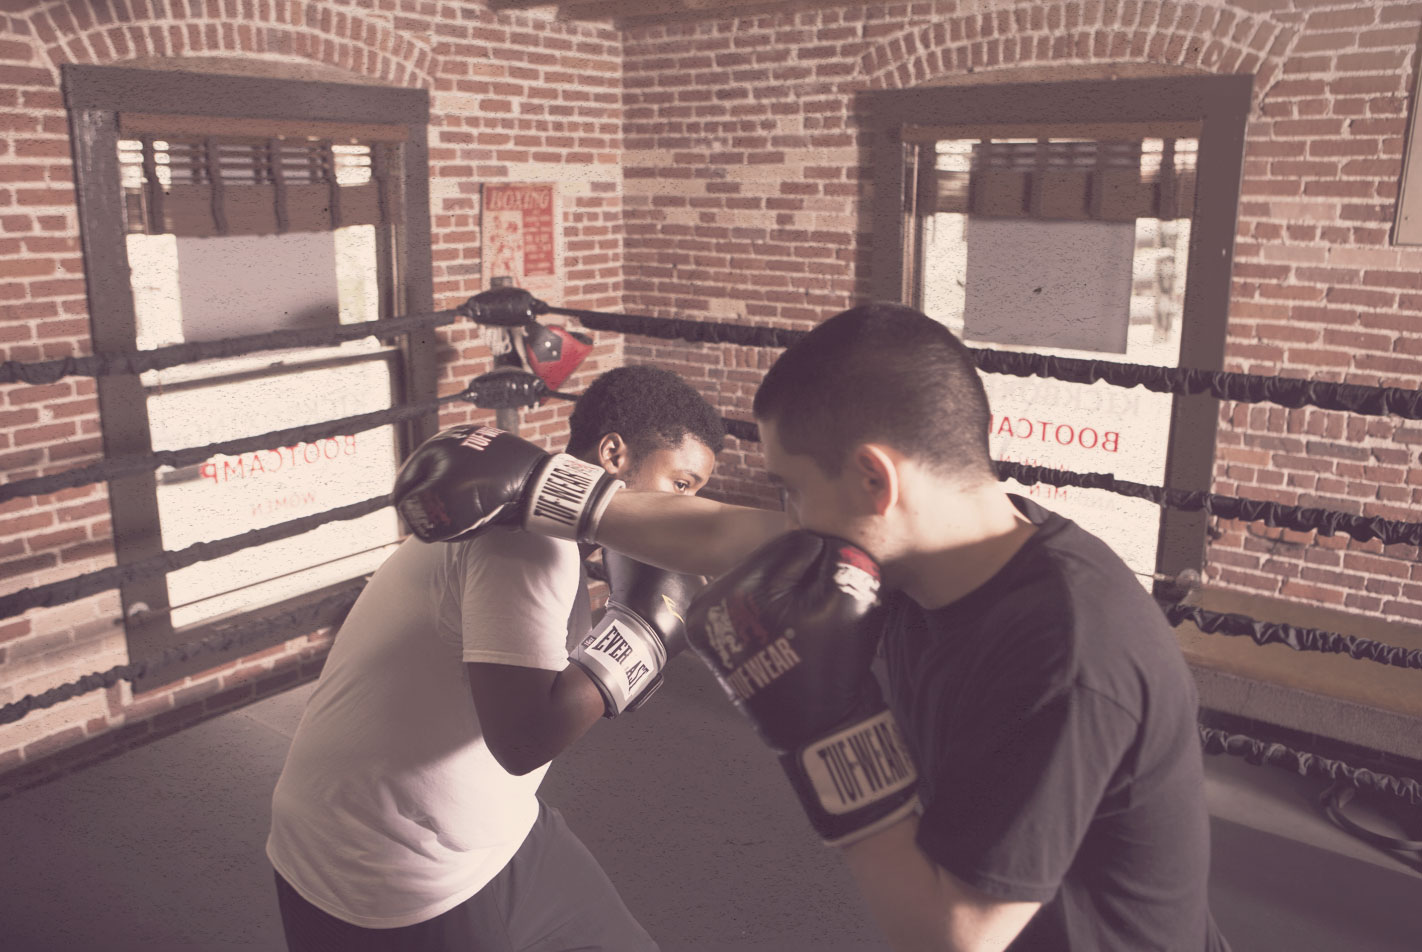 Elite Sparring in the ring.